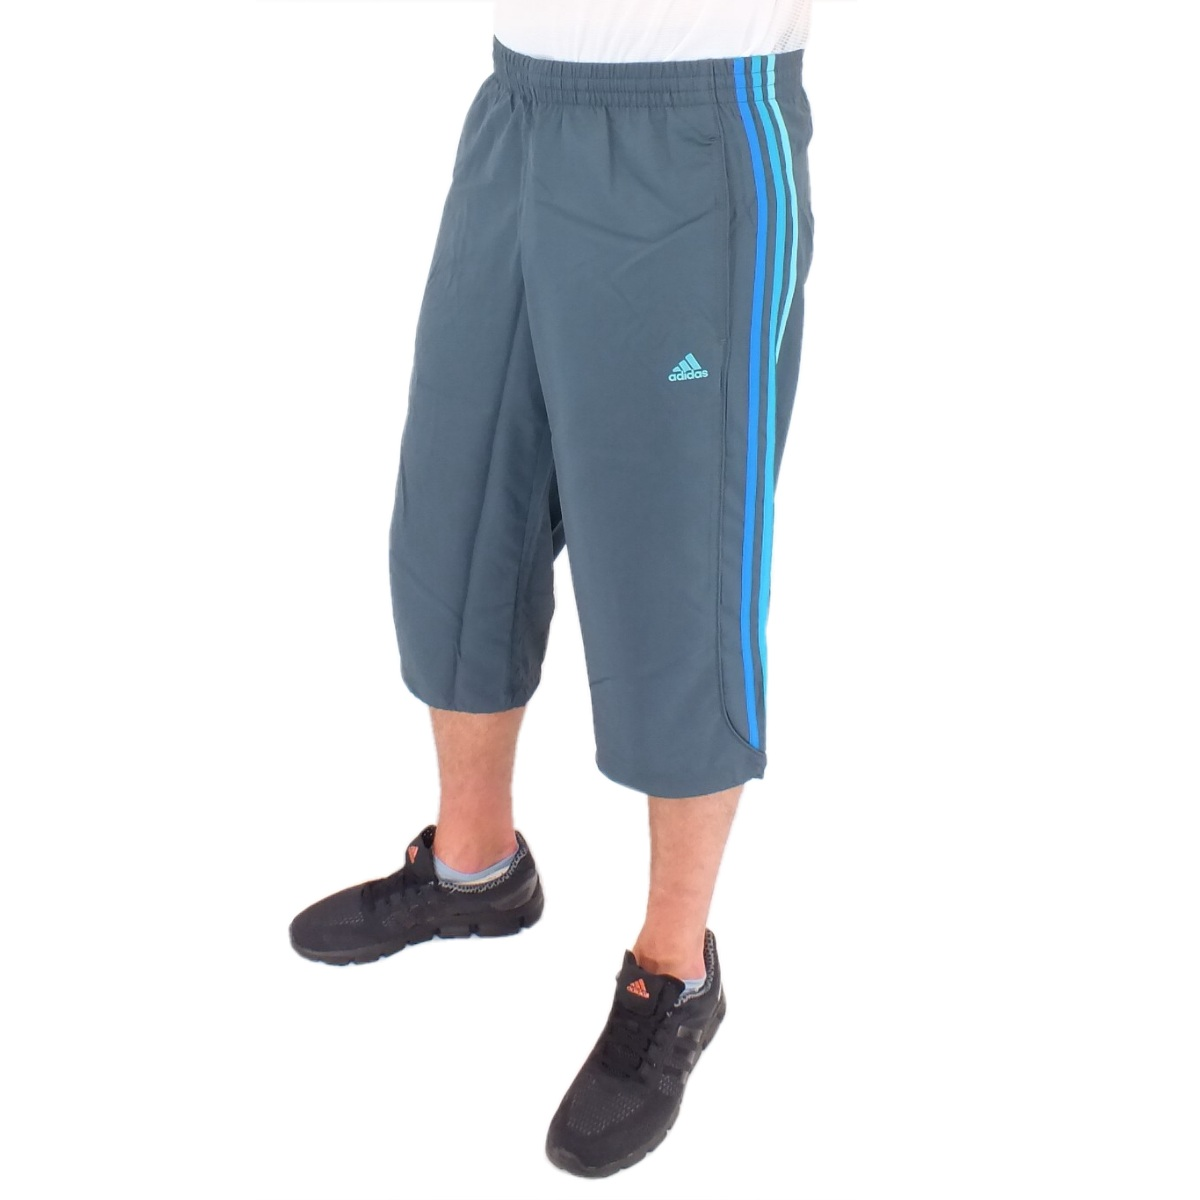 adidas ess 3s 3 4 herren pant hose anthrazite sporthose trainingshose kurz ebay. Black Bedroom Furniture Sets. Home Design Ideas